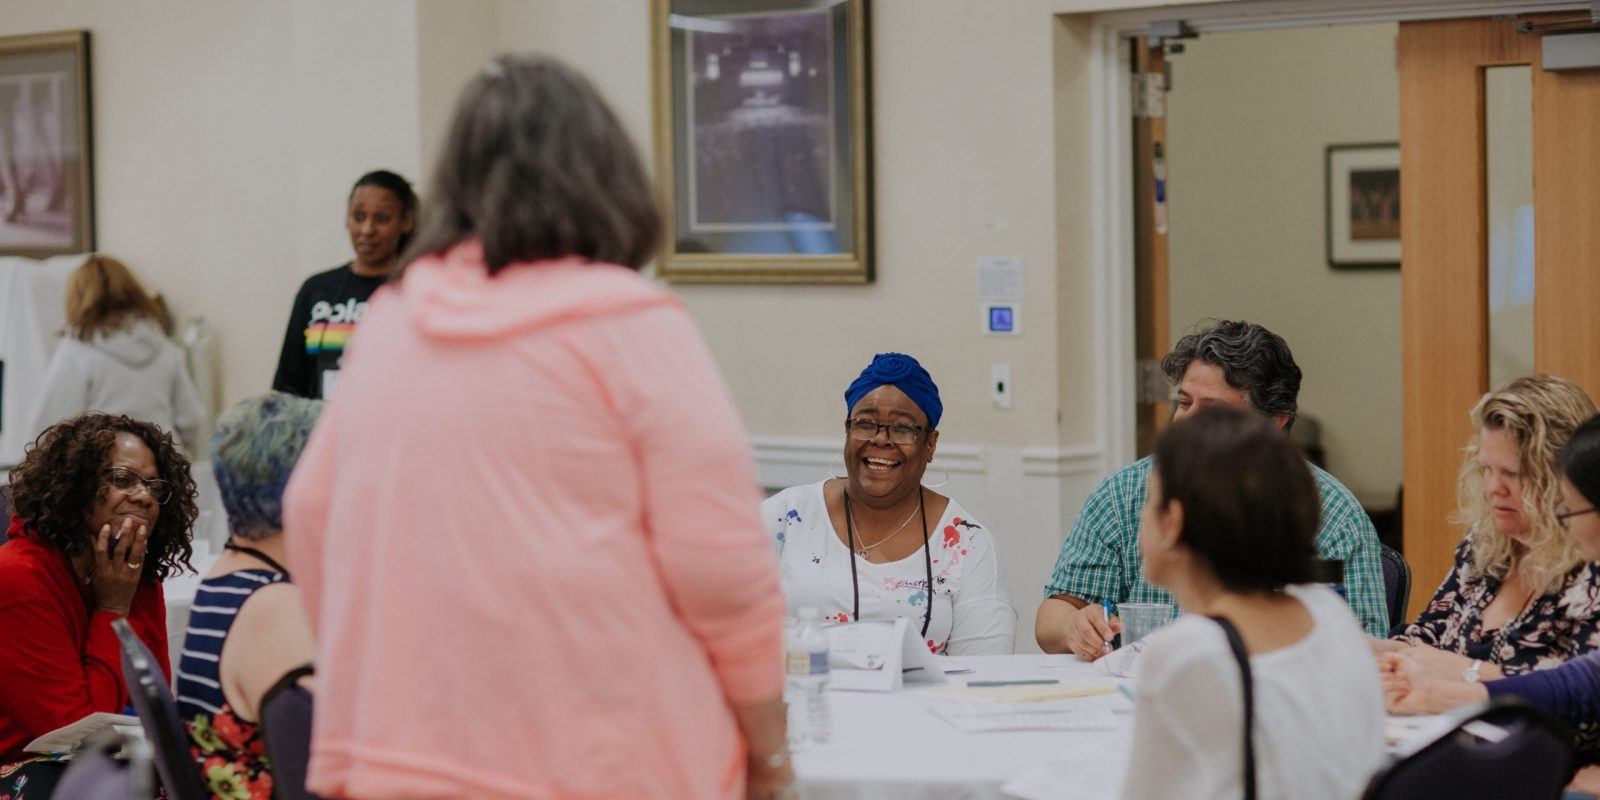 parents sit around a table at an event talking and laughing